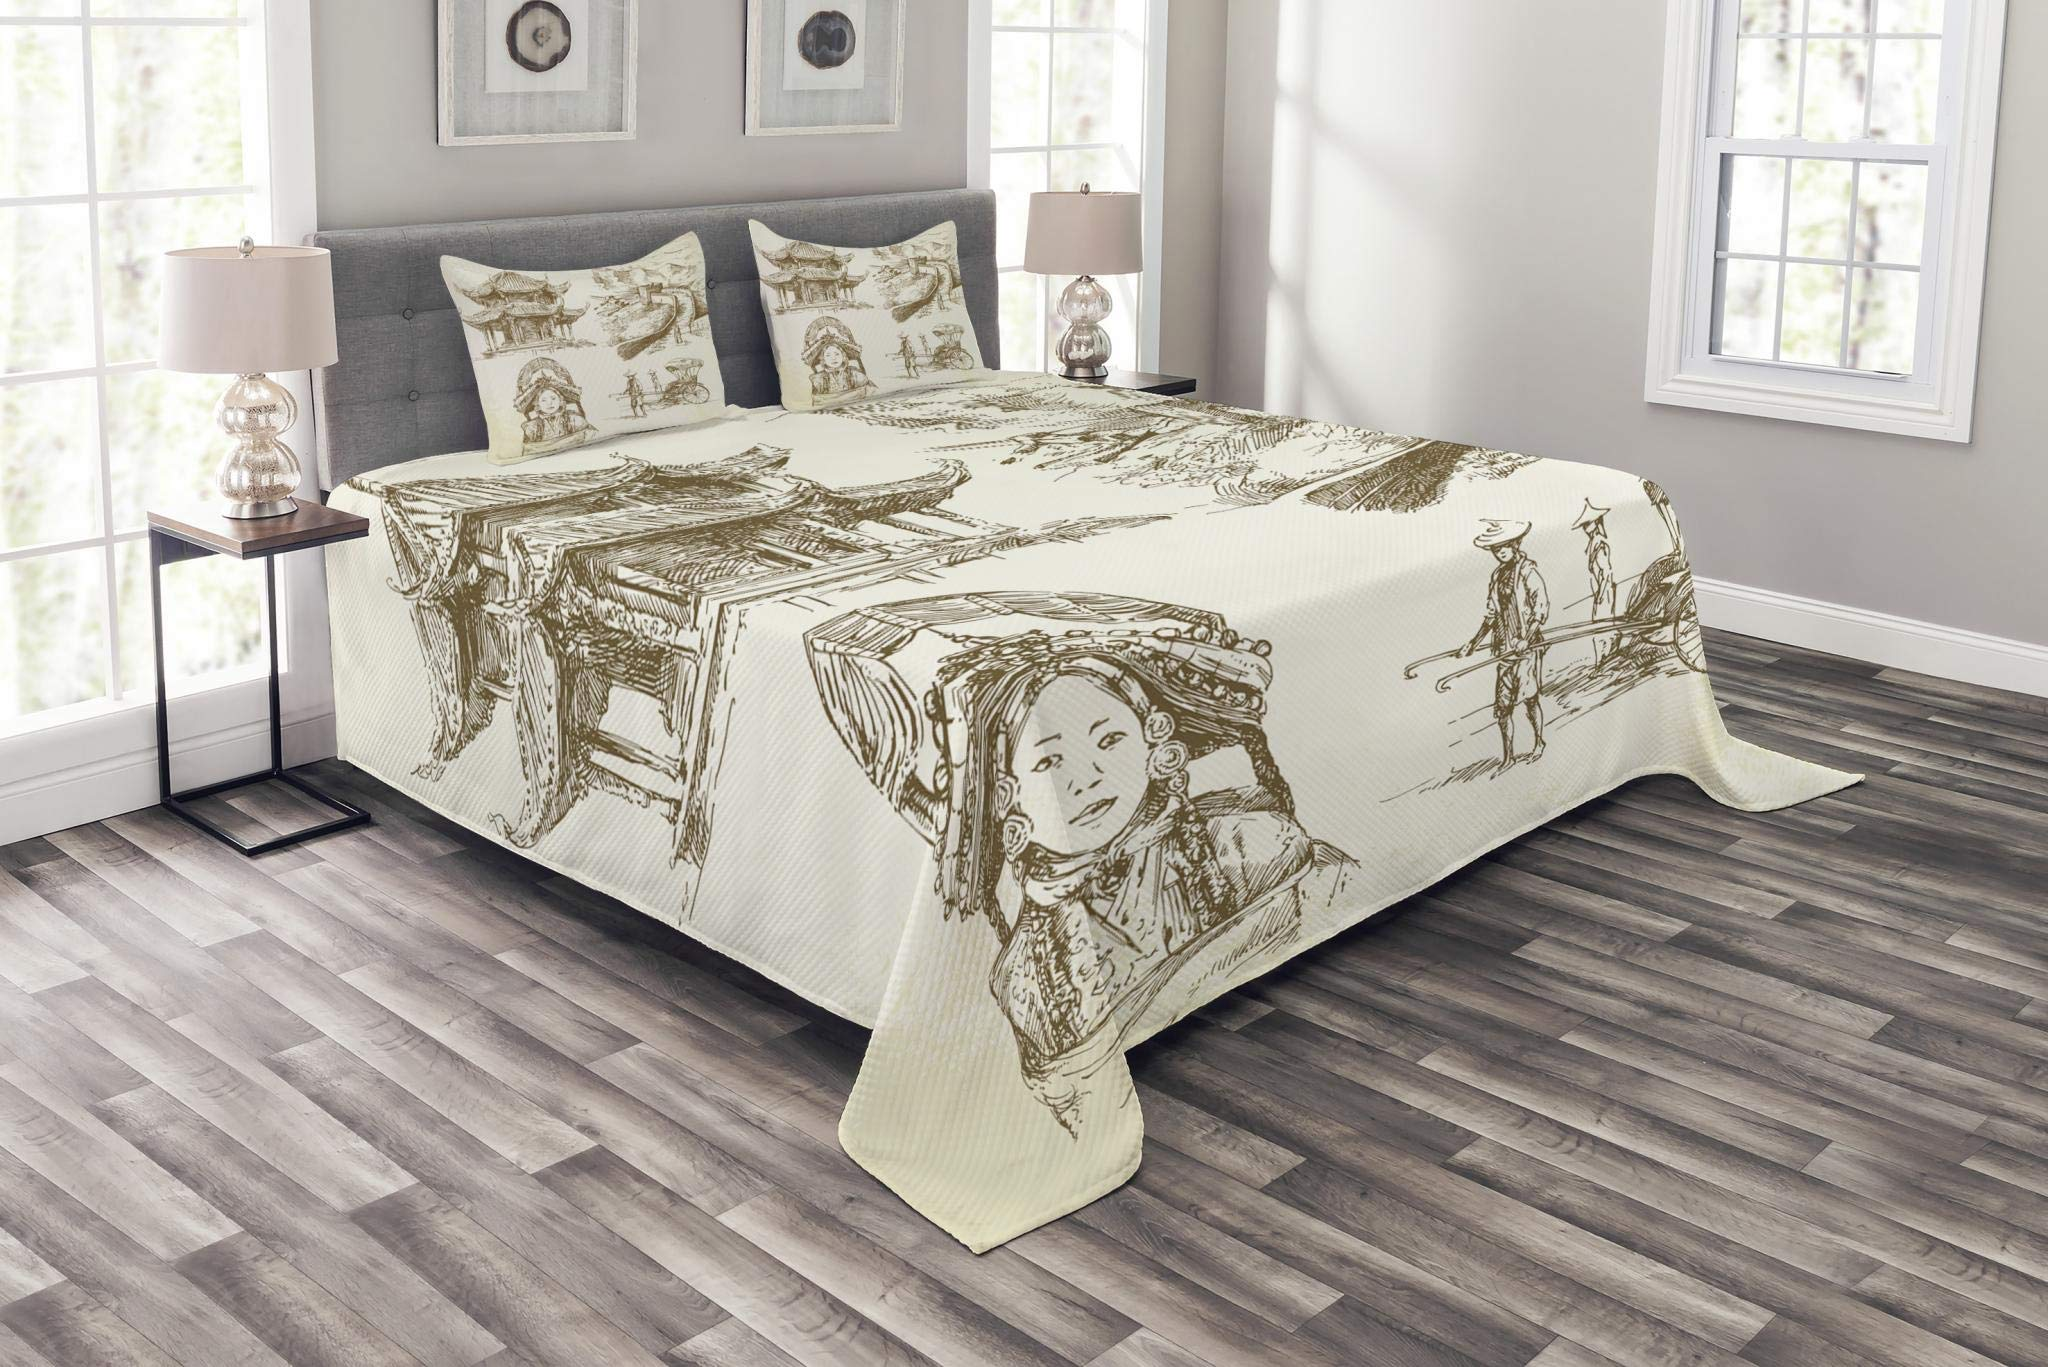 Lunarable Ancient China Bedspread Set King Size, Chinese Heritage Symbols Pagoda and Great Wall Woman Portrait Sketch Artwork, Decorative Quilted 3 Piece Coverlet Set with 2 Pillow Shams, Brown Cream